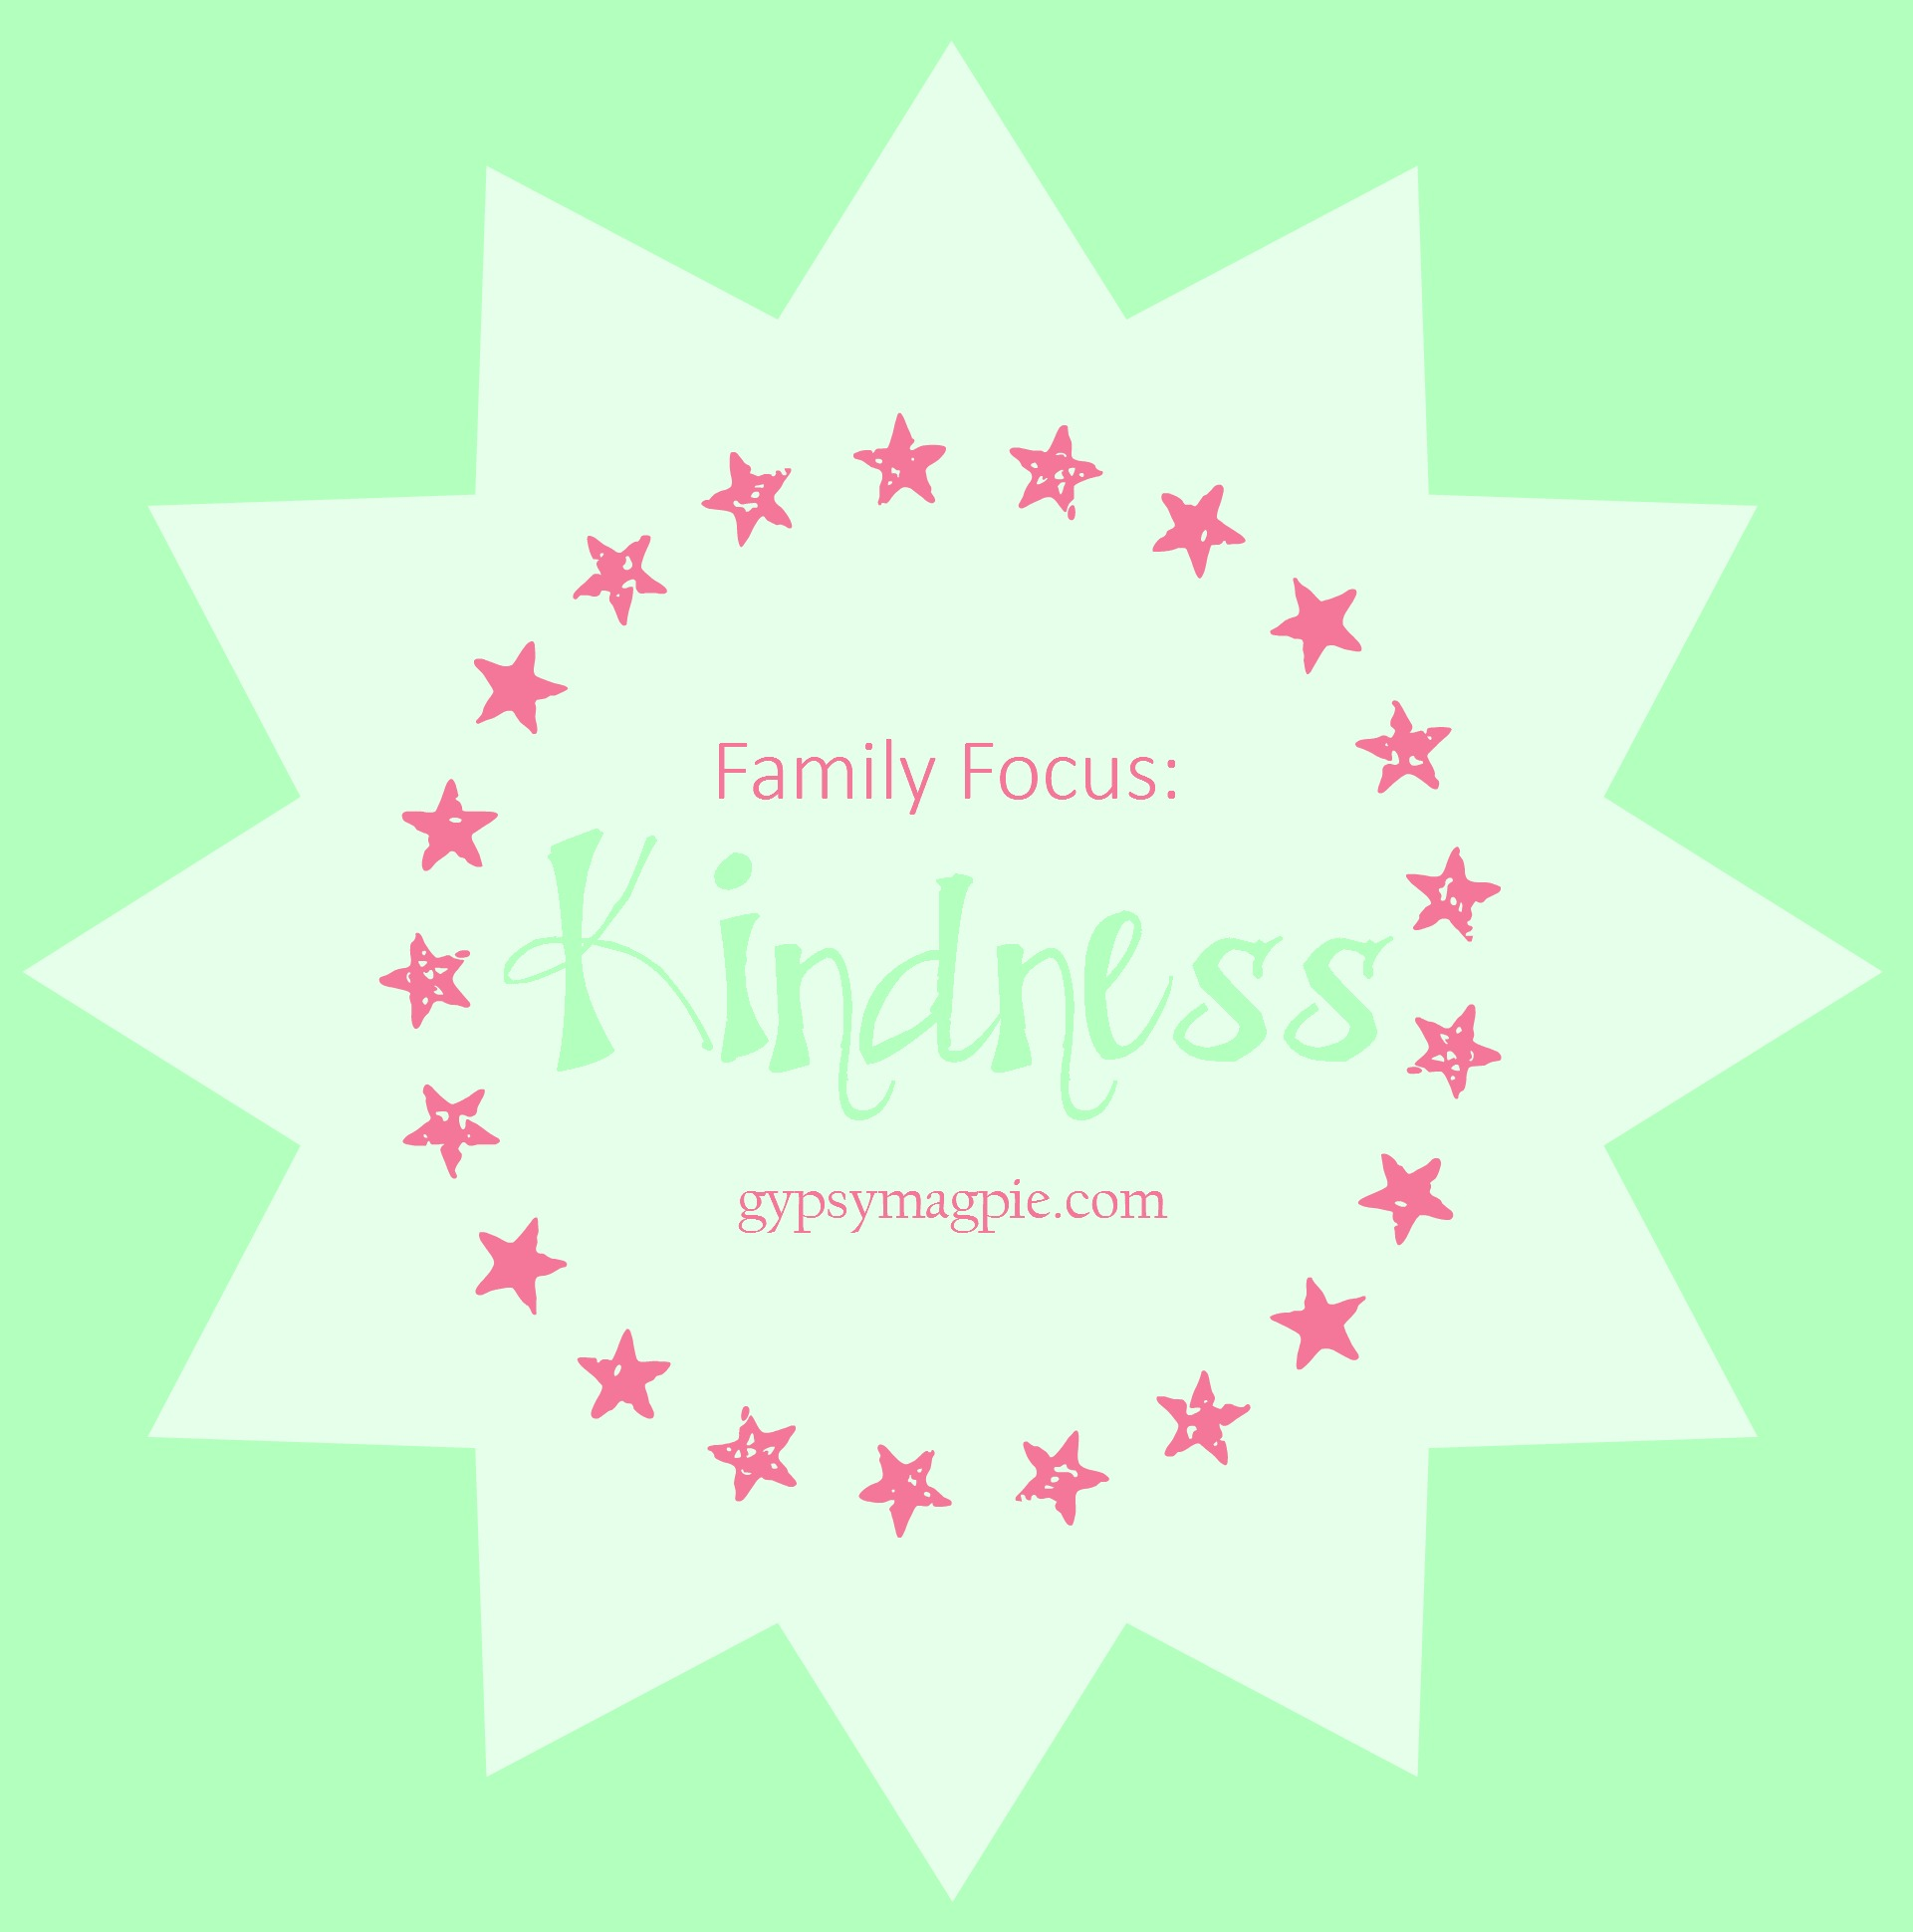 October's Family Focus: Kindness {Gypsy Magpie}